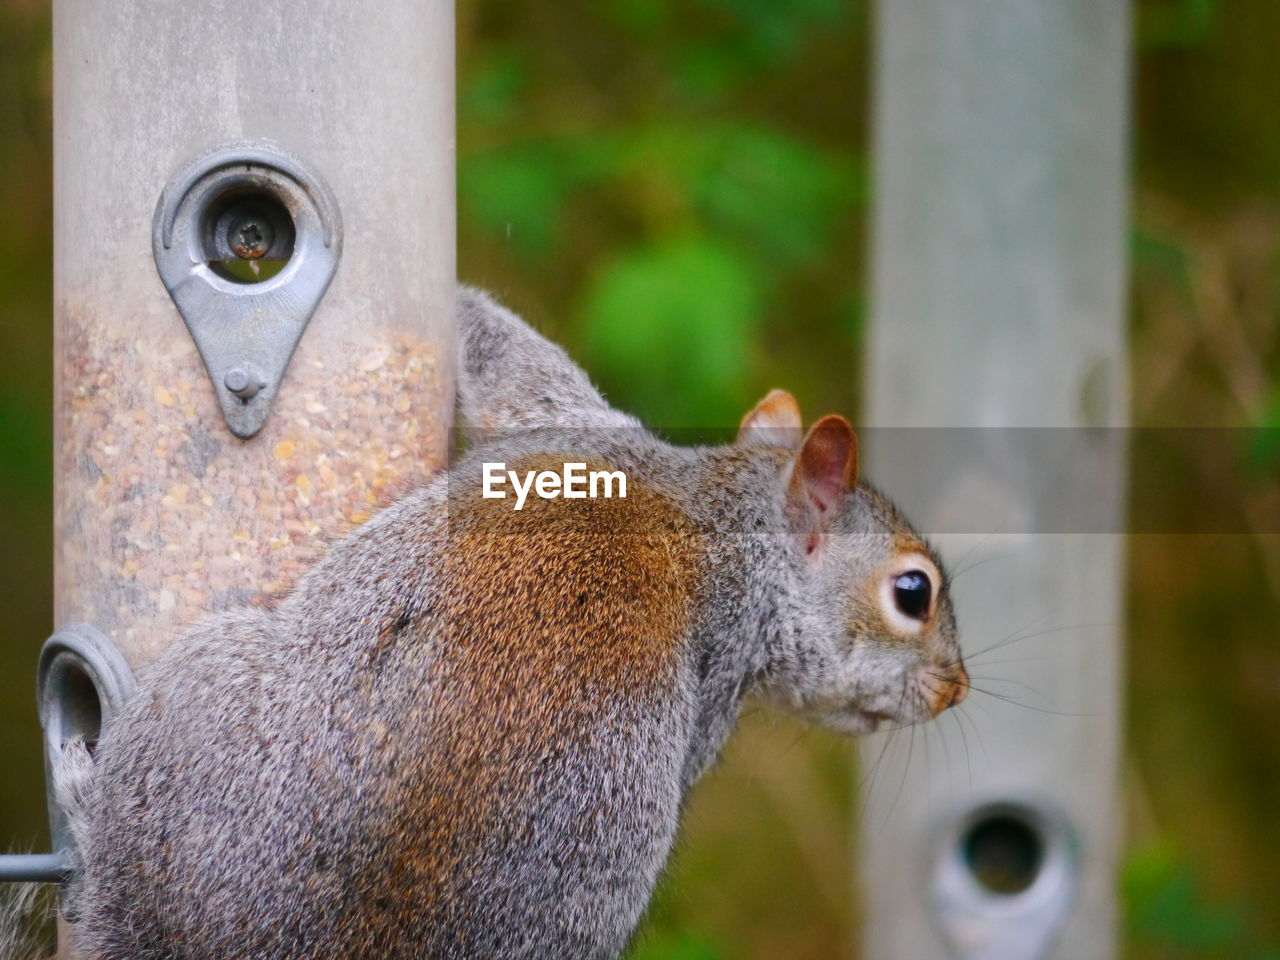 animal, animal themes, animal wildlife, animals in the wild, mammal, one animal, squirrel, rodent, focus on foreground, close-up, vertebrate, no people, day, nature, outdoors, side view, tree, animal body part, portrait, looking, animal head, whisker, animal eye